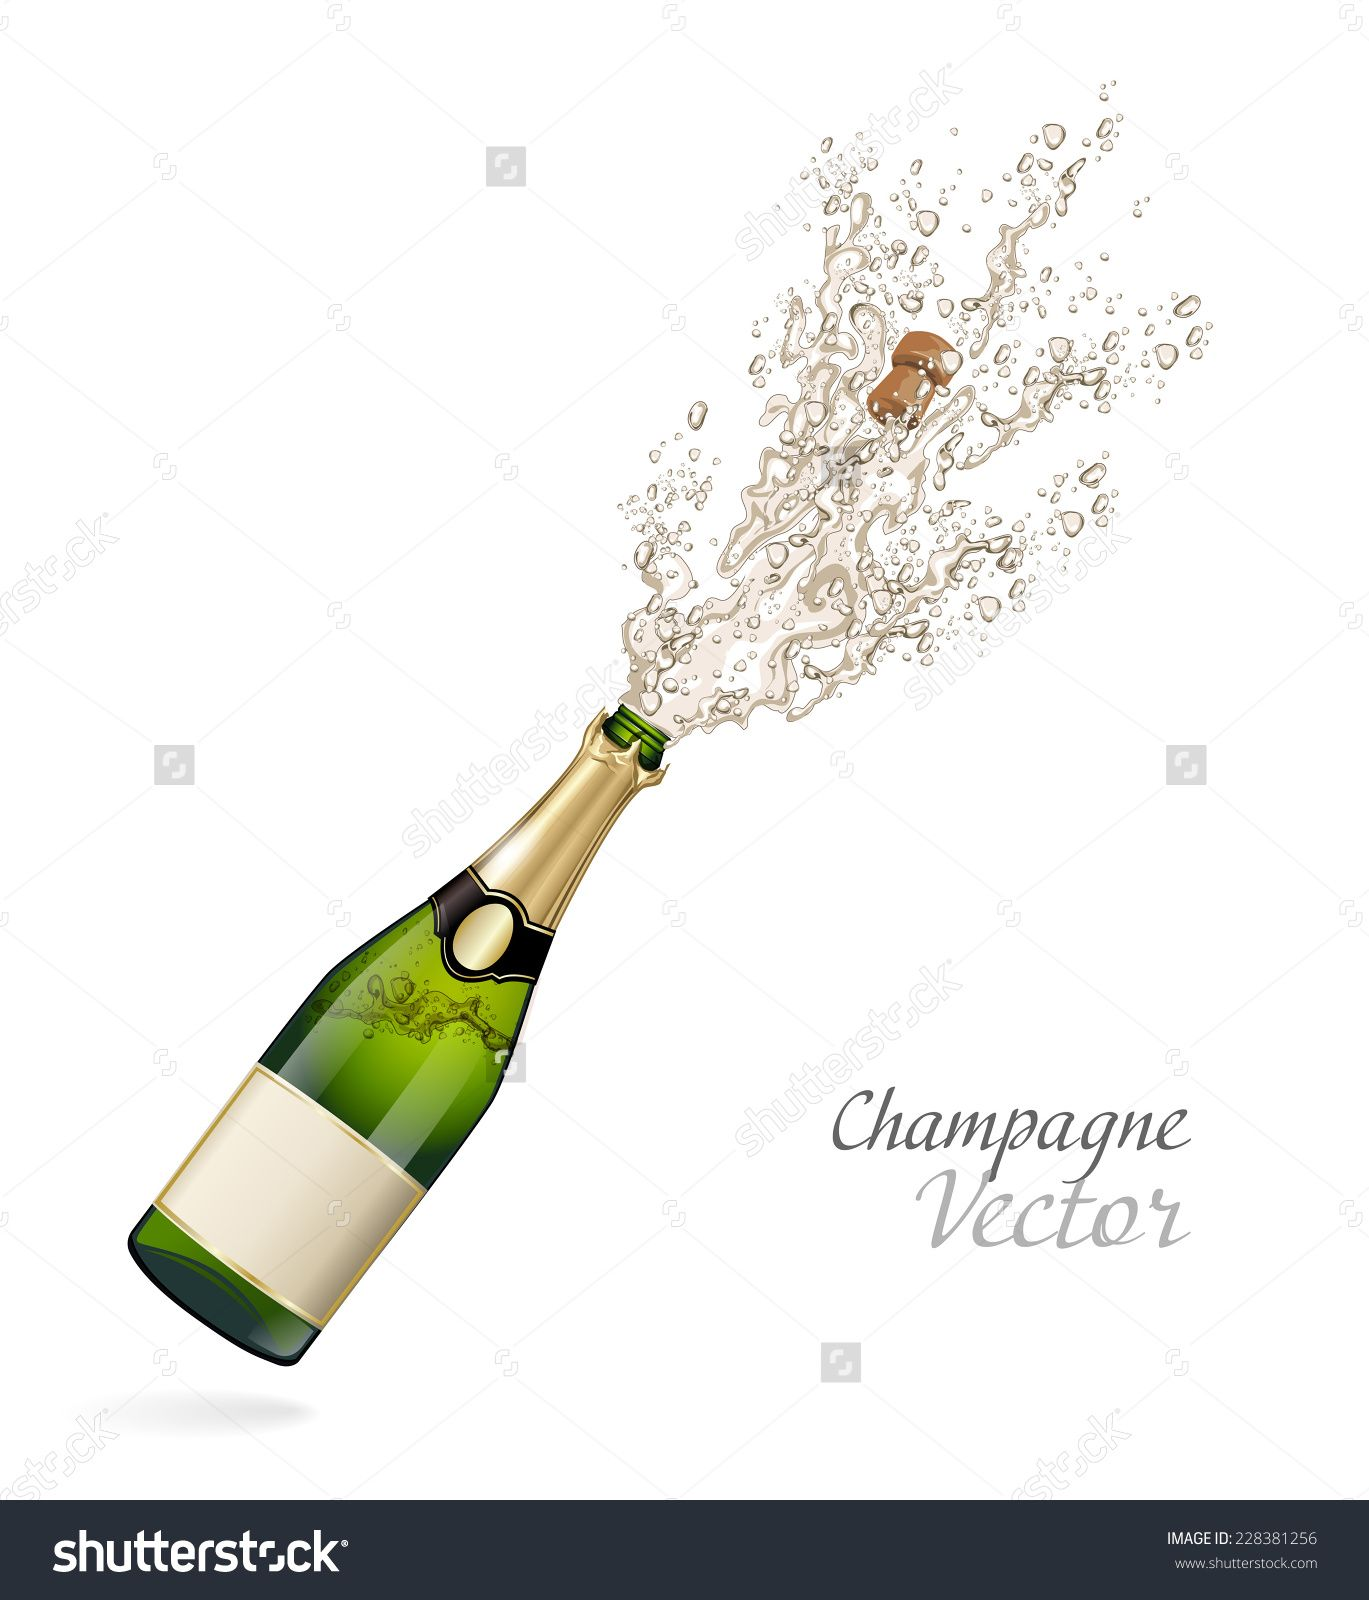 Vector Bottle Of Champagne Explosion Champagne Bottle Champagne Bottles